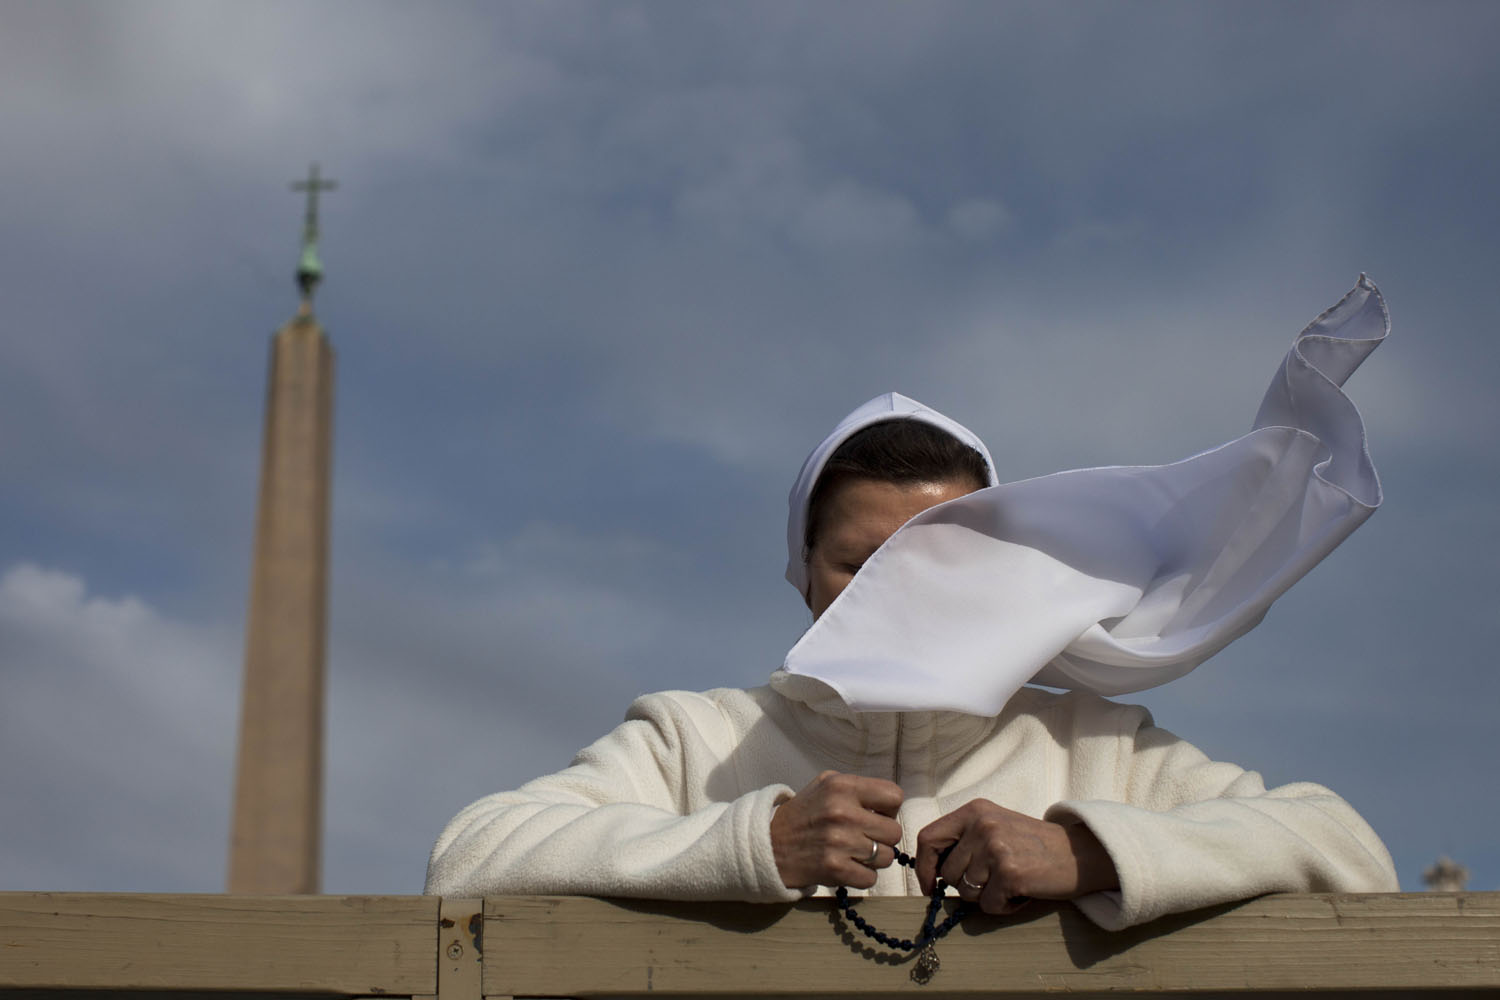 March 14, 2013. A gust of wind blows a nun's veil as she stands in front of St. Peter's Basilica, at the Vatican.